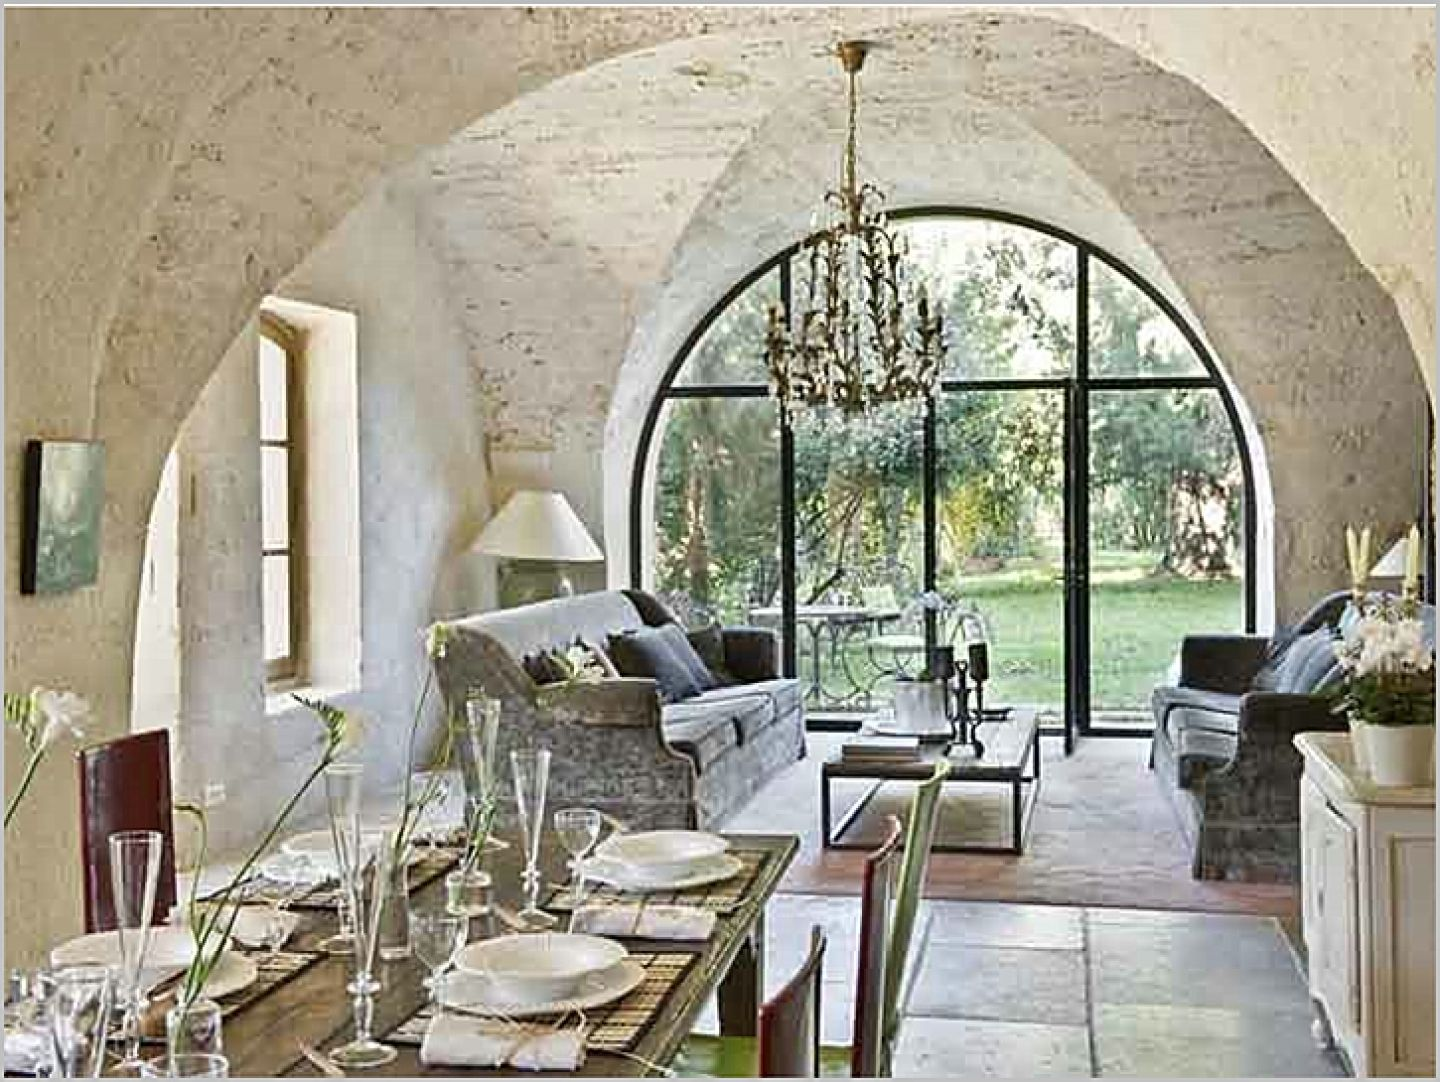 Modern french country dining room - Living Room Dining Home Decorating French European Country Stone Walls Interior Design